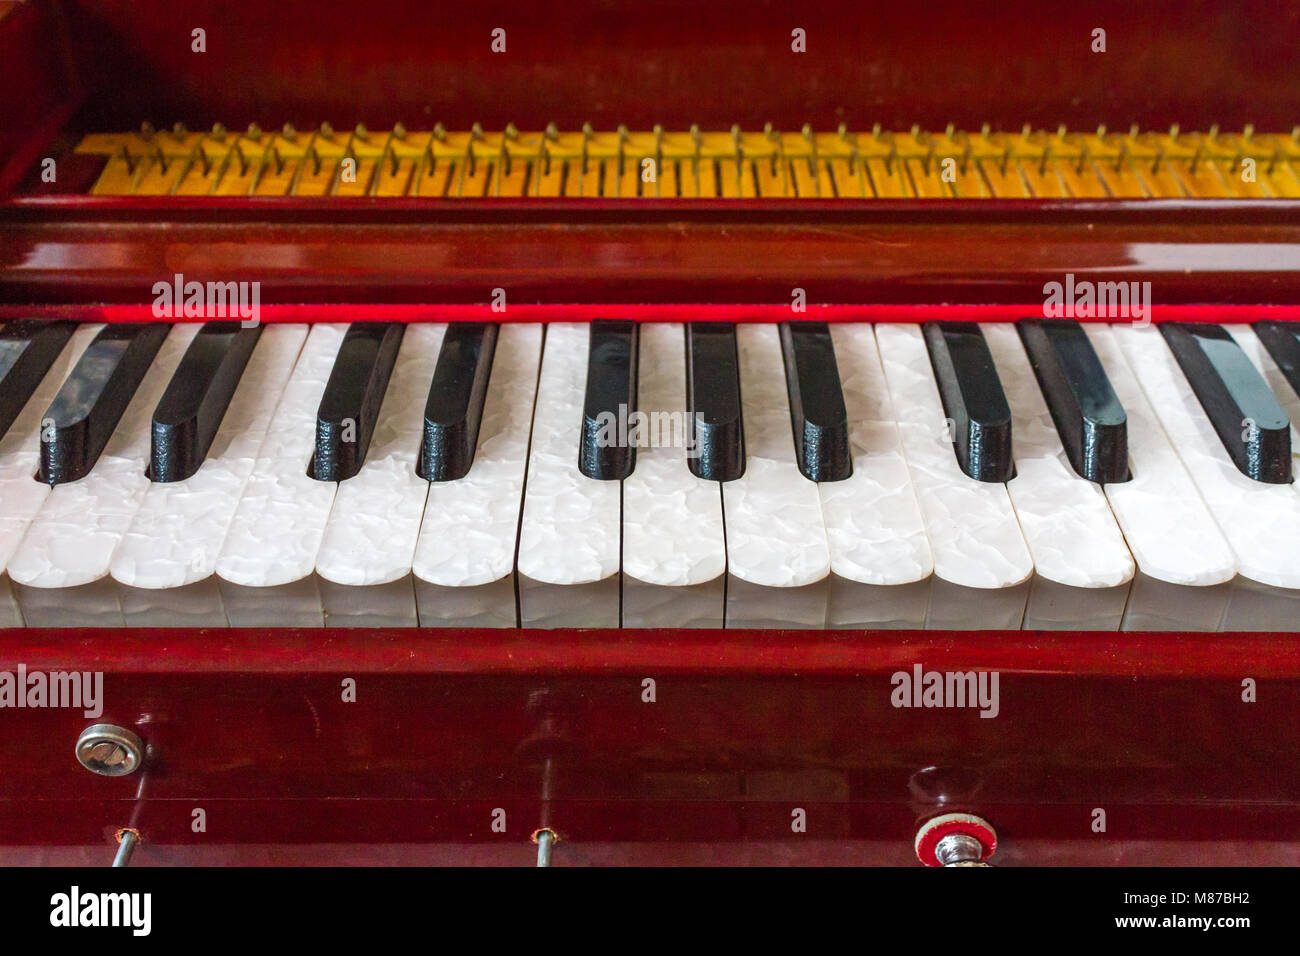 Harmonium Indian Stock Photos & Harmonium Indian Stock Images - Alamy